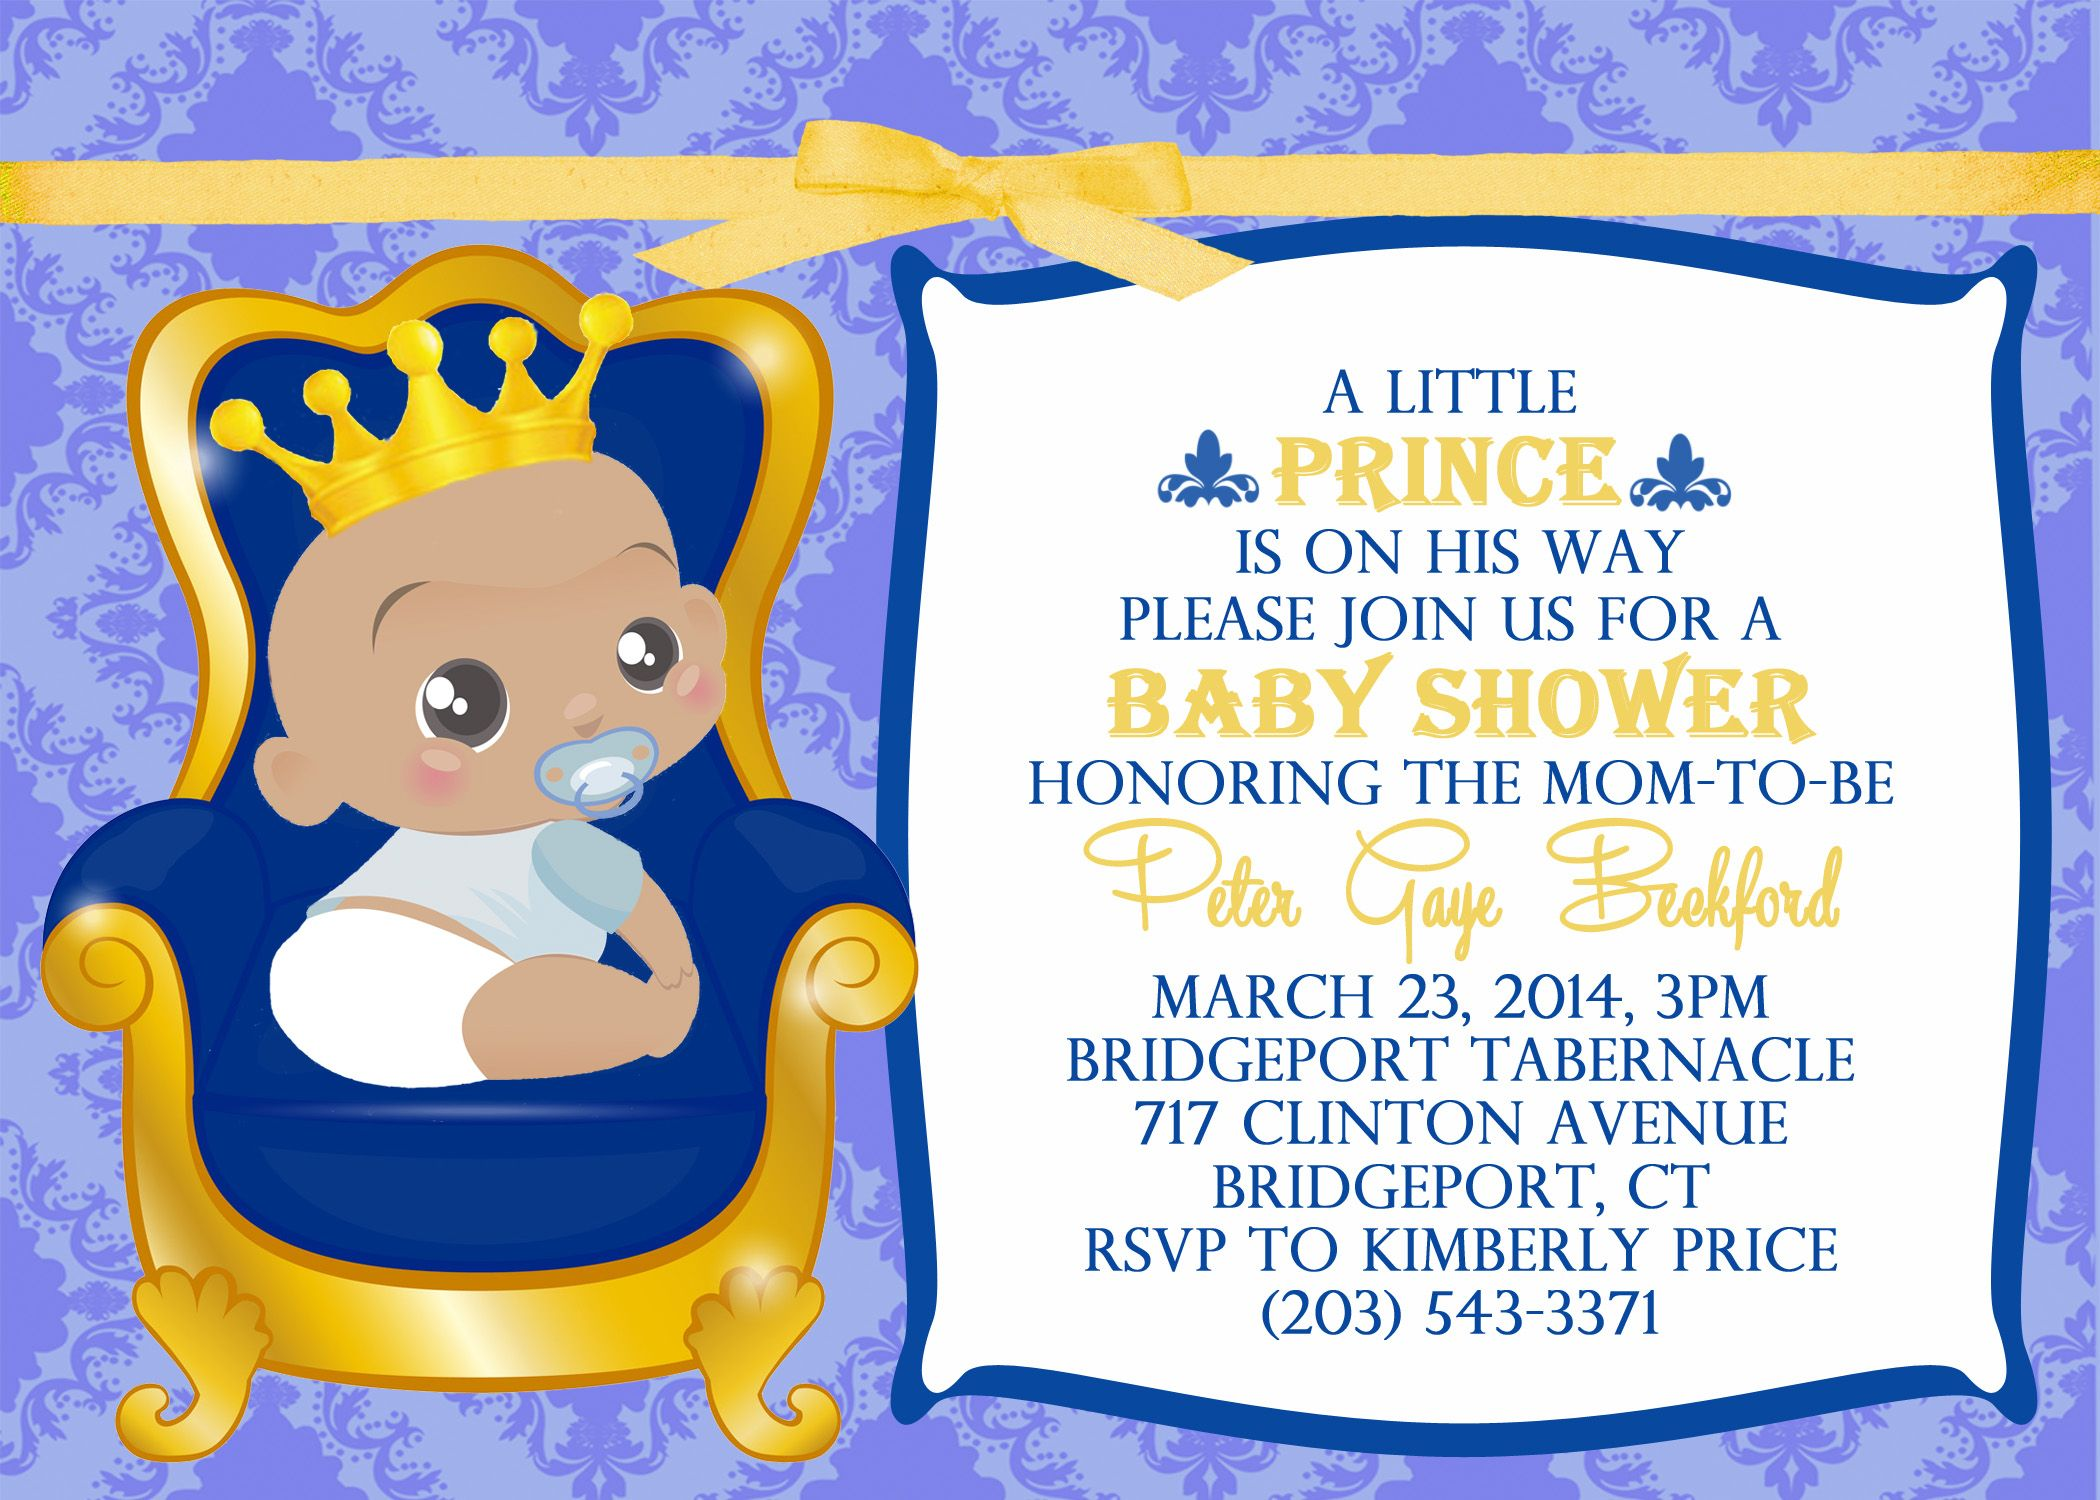 Little Prince Baby Shower Invitation Digital or Printable | Shower ...